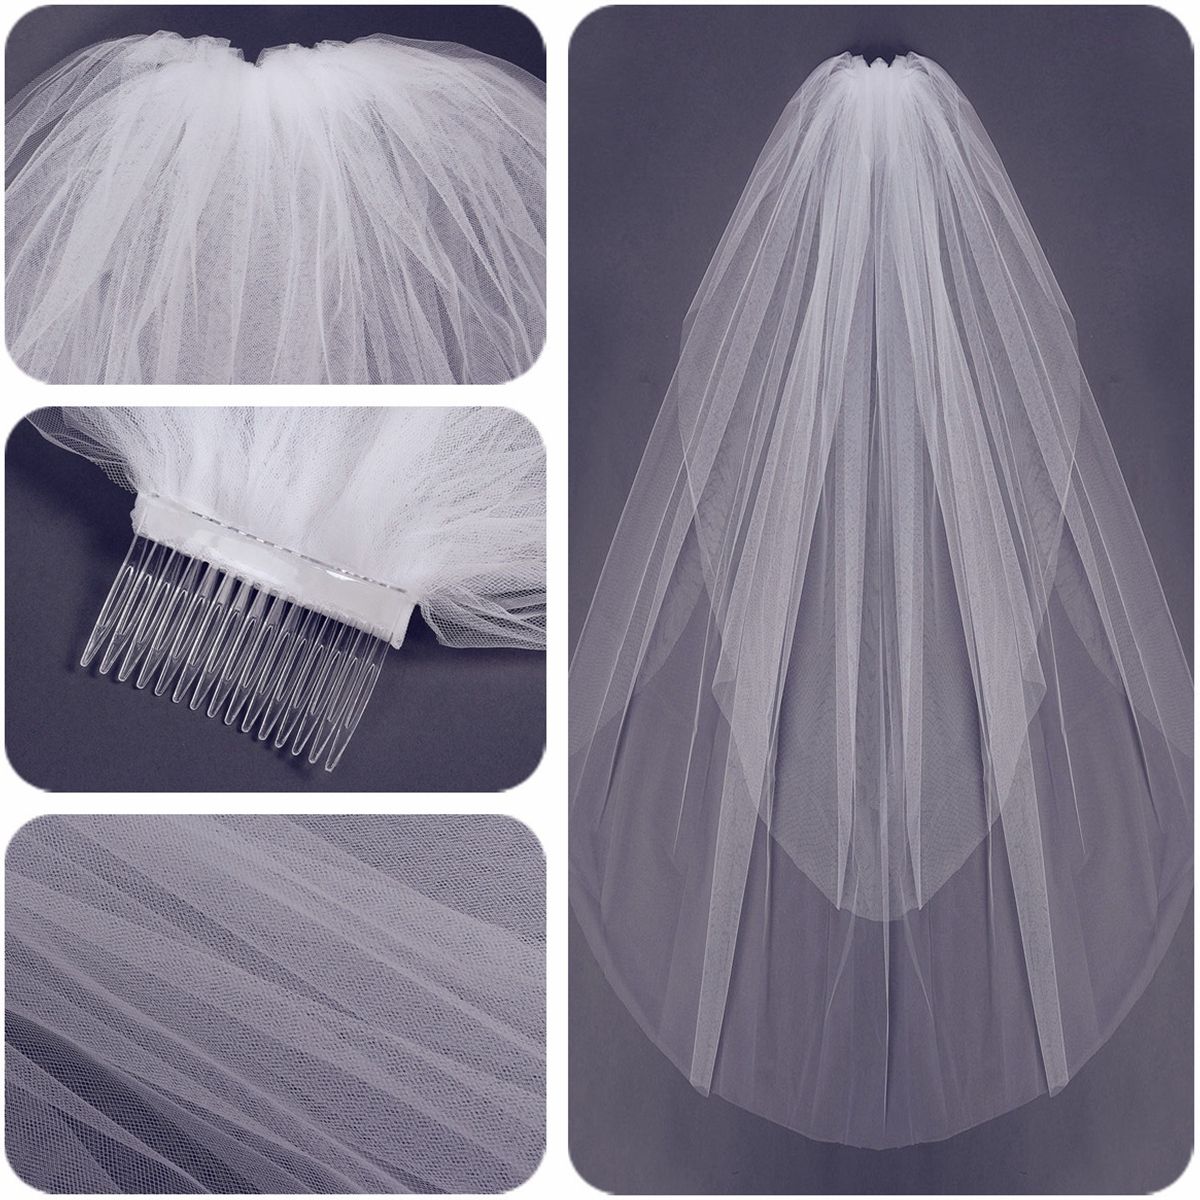 2 Layers Bride White Ivory Bridal Elbow Length Cut Edge Wedding Veil With Comb